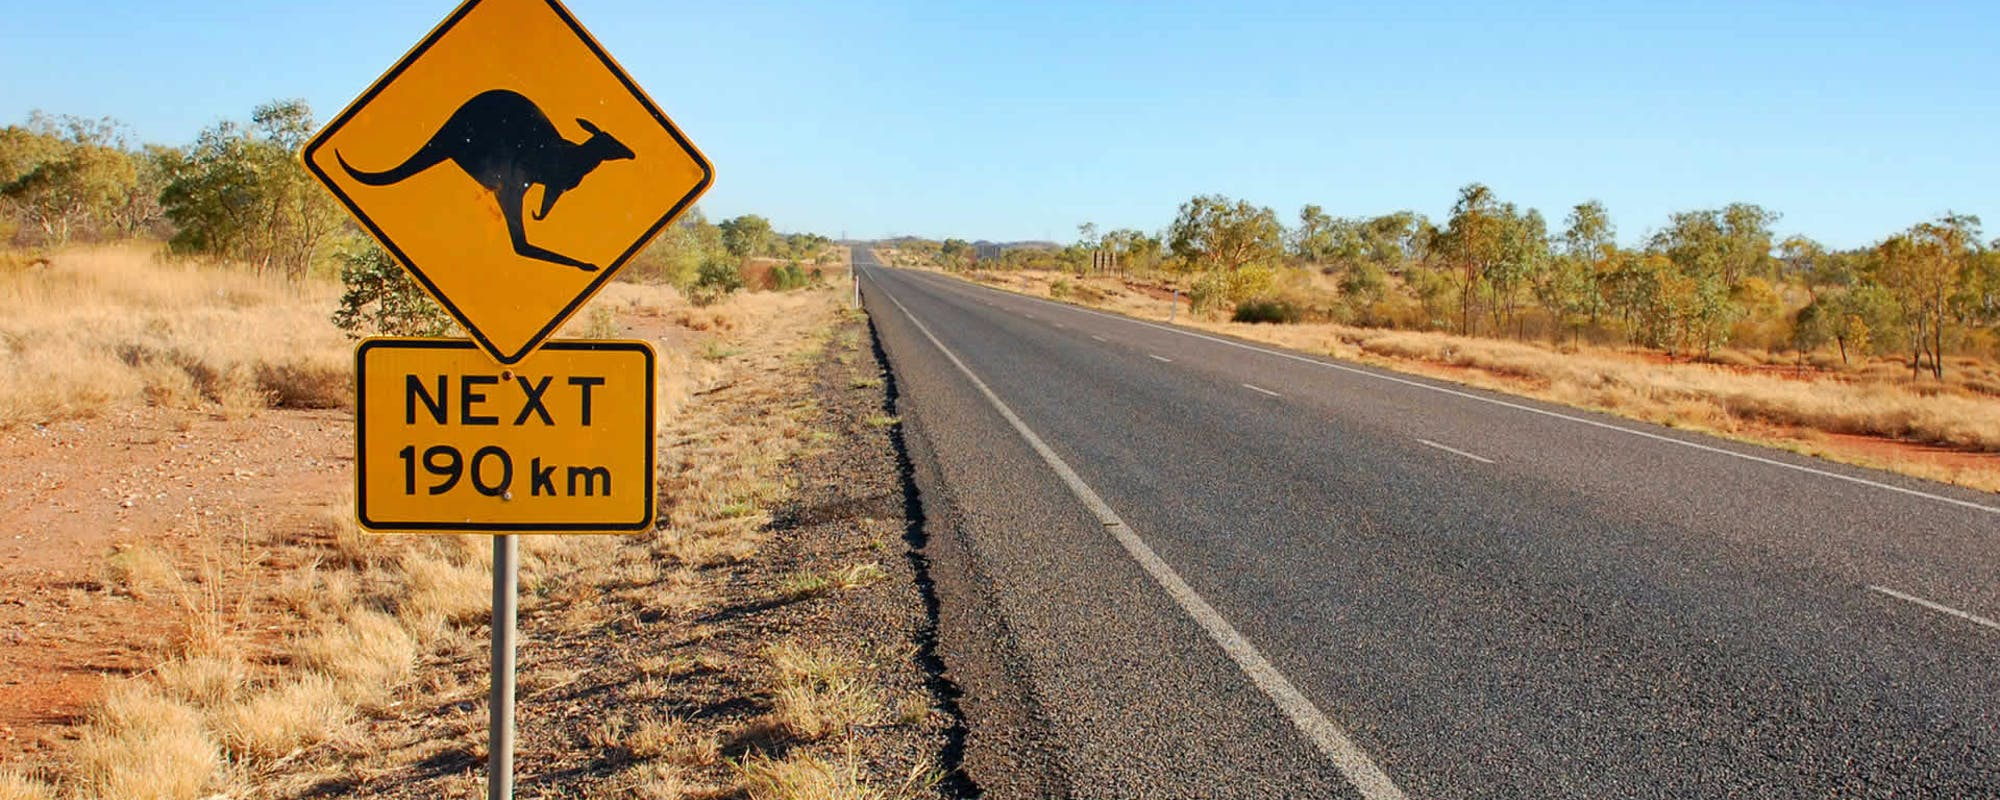 places to visit in australia backpackers guide to australia